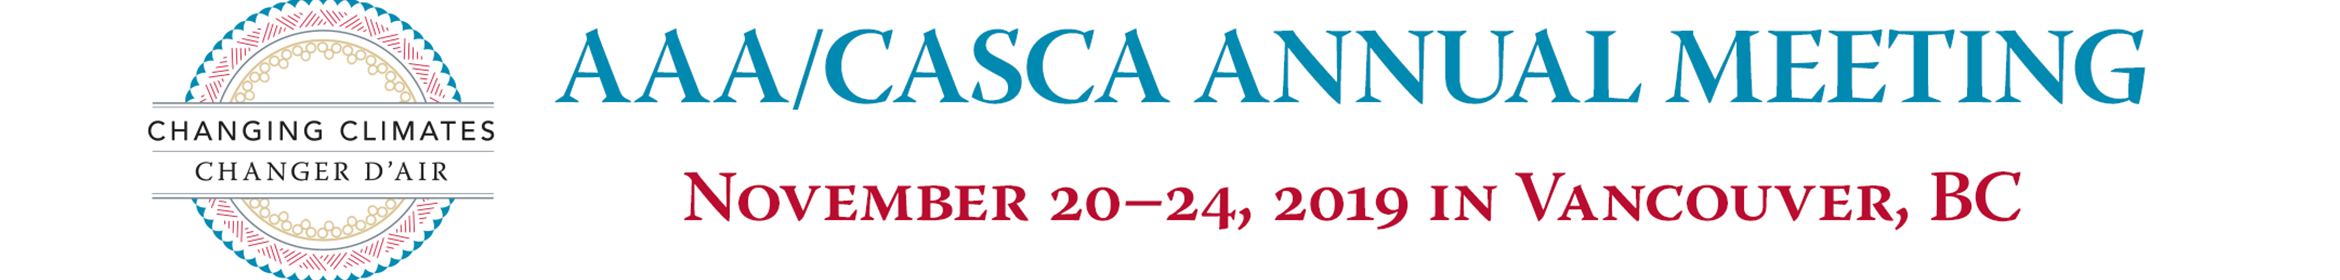 2019 AAA/CASCA Annual Meeting Main banner